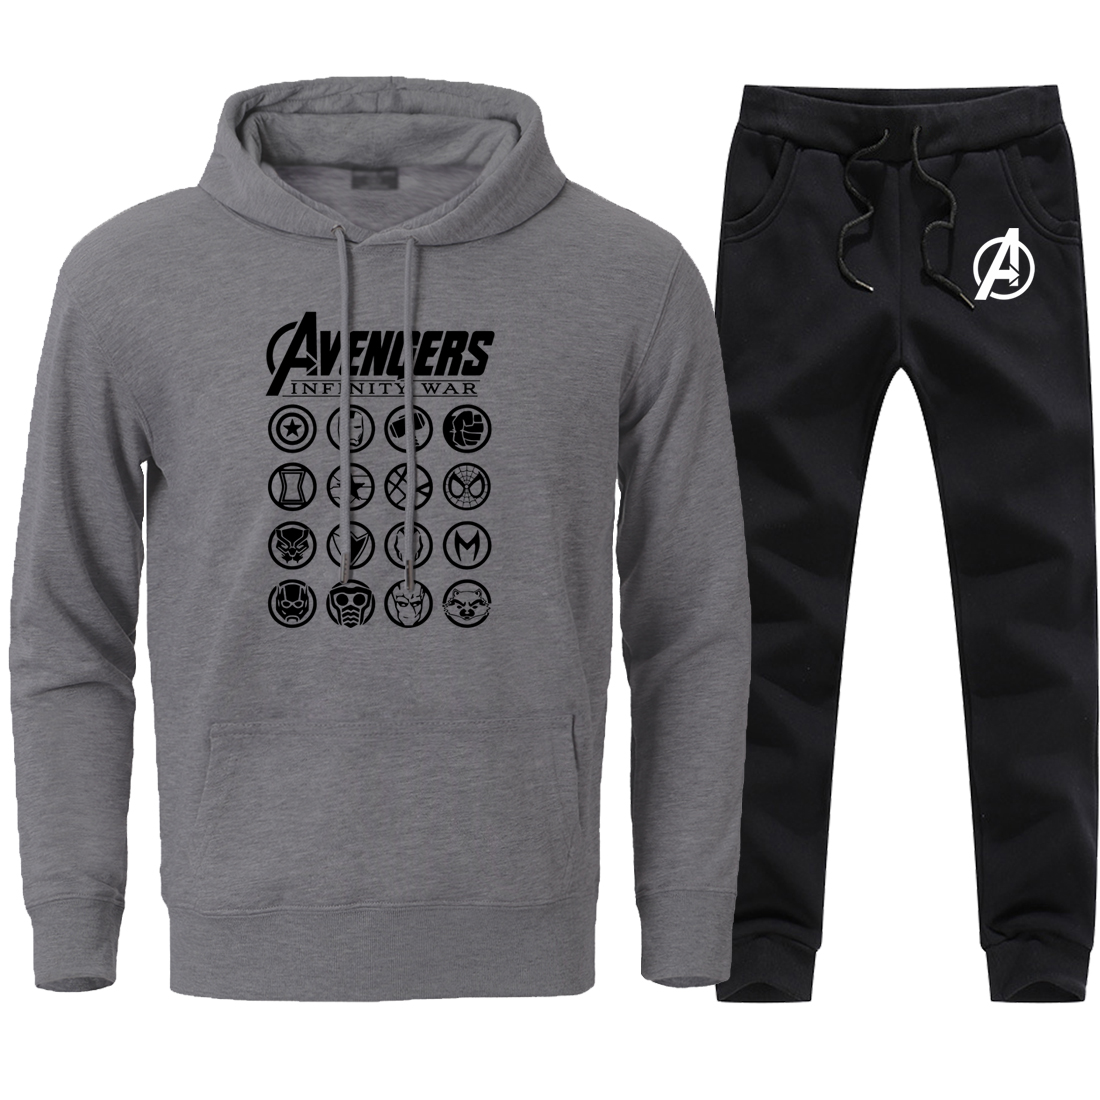 Fashion The Avengers Print Sweatshirts Mens 2 Pieces Streetwear Sweatpants Sets 2020 Man Brand Hip Hop Pants+Hoodies Black Sets